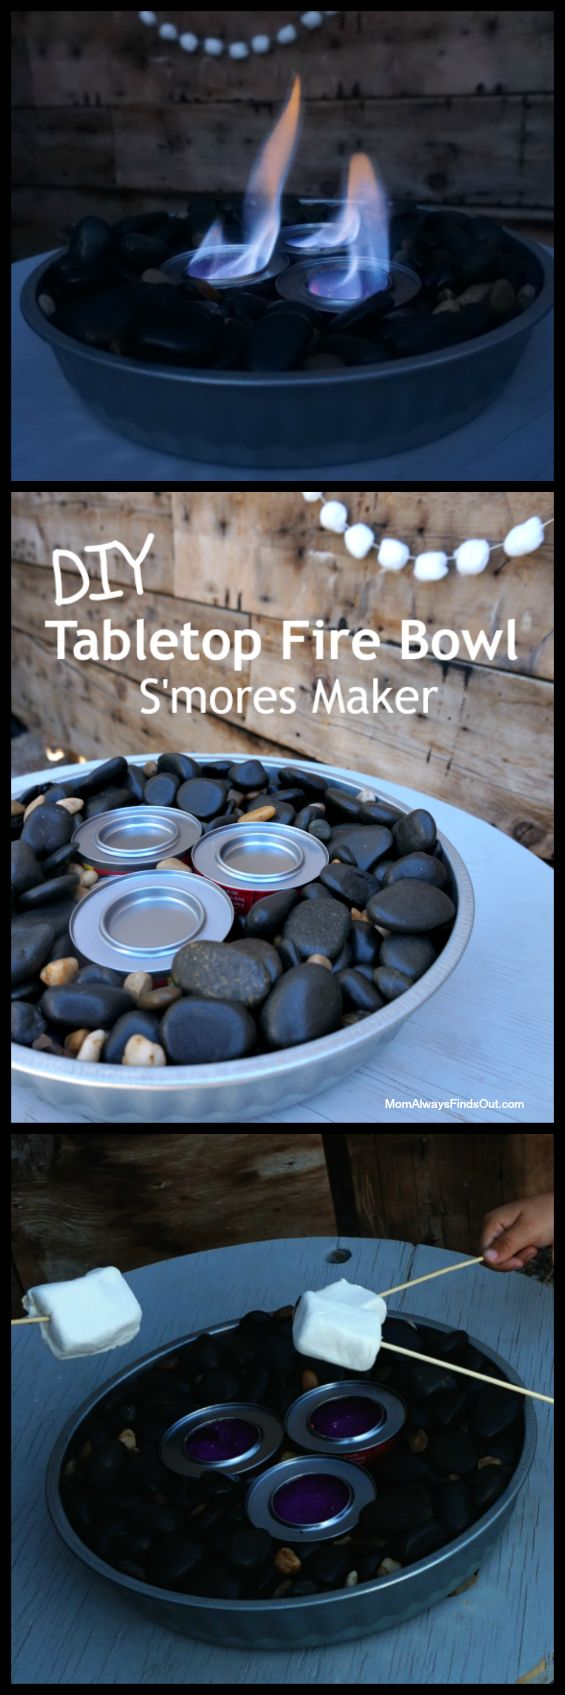 DIY Tabletop Fire Bowl. Perfect for Making S'mores without a campfire. See tutorial at Mom Always Finds Out.